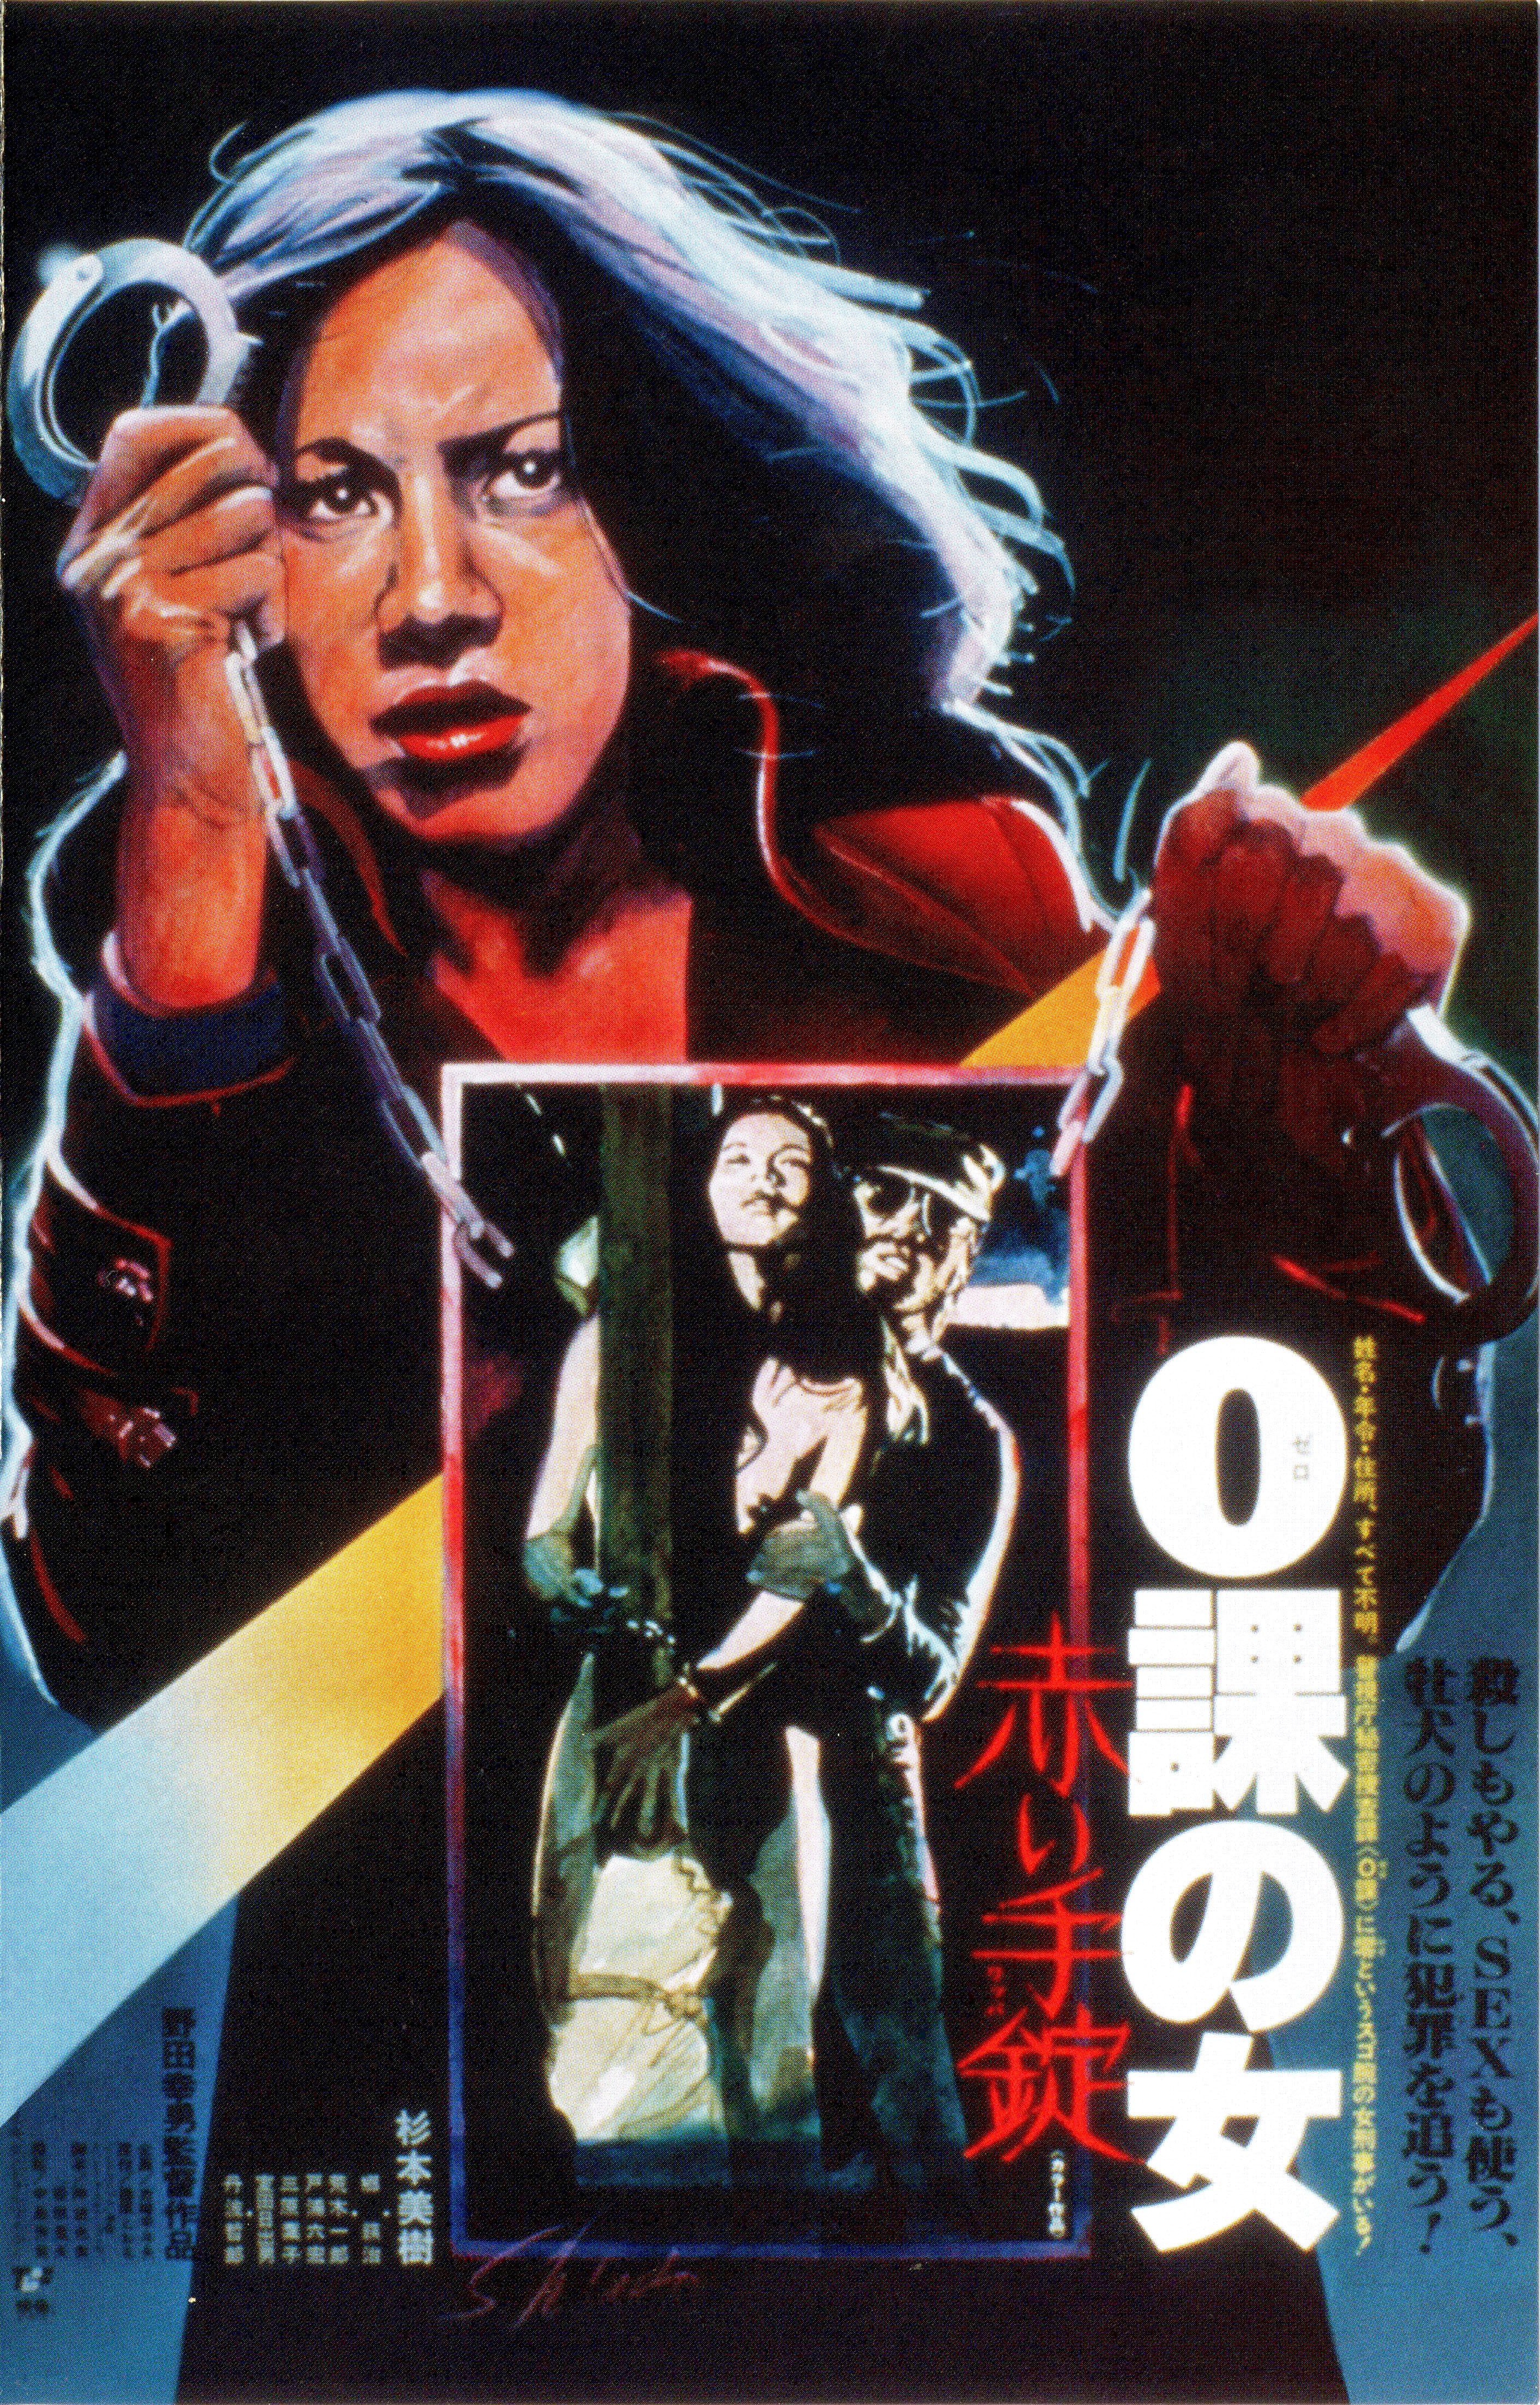 zero_woman_red_handcuffs_poster_01.jpg